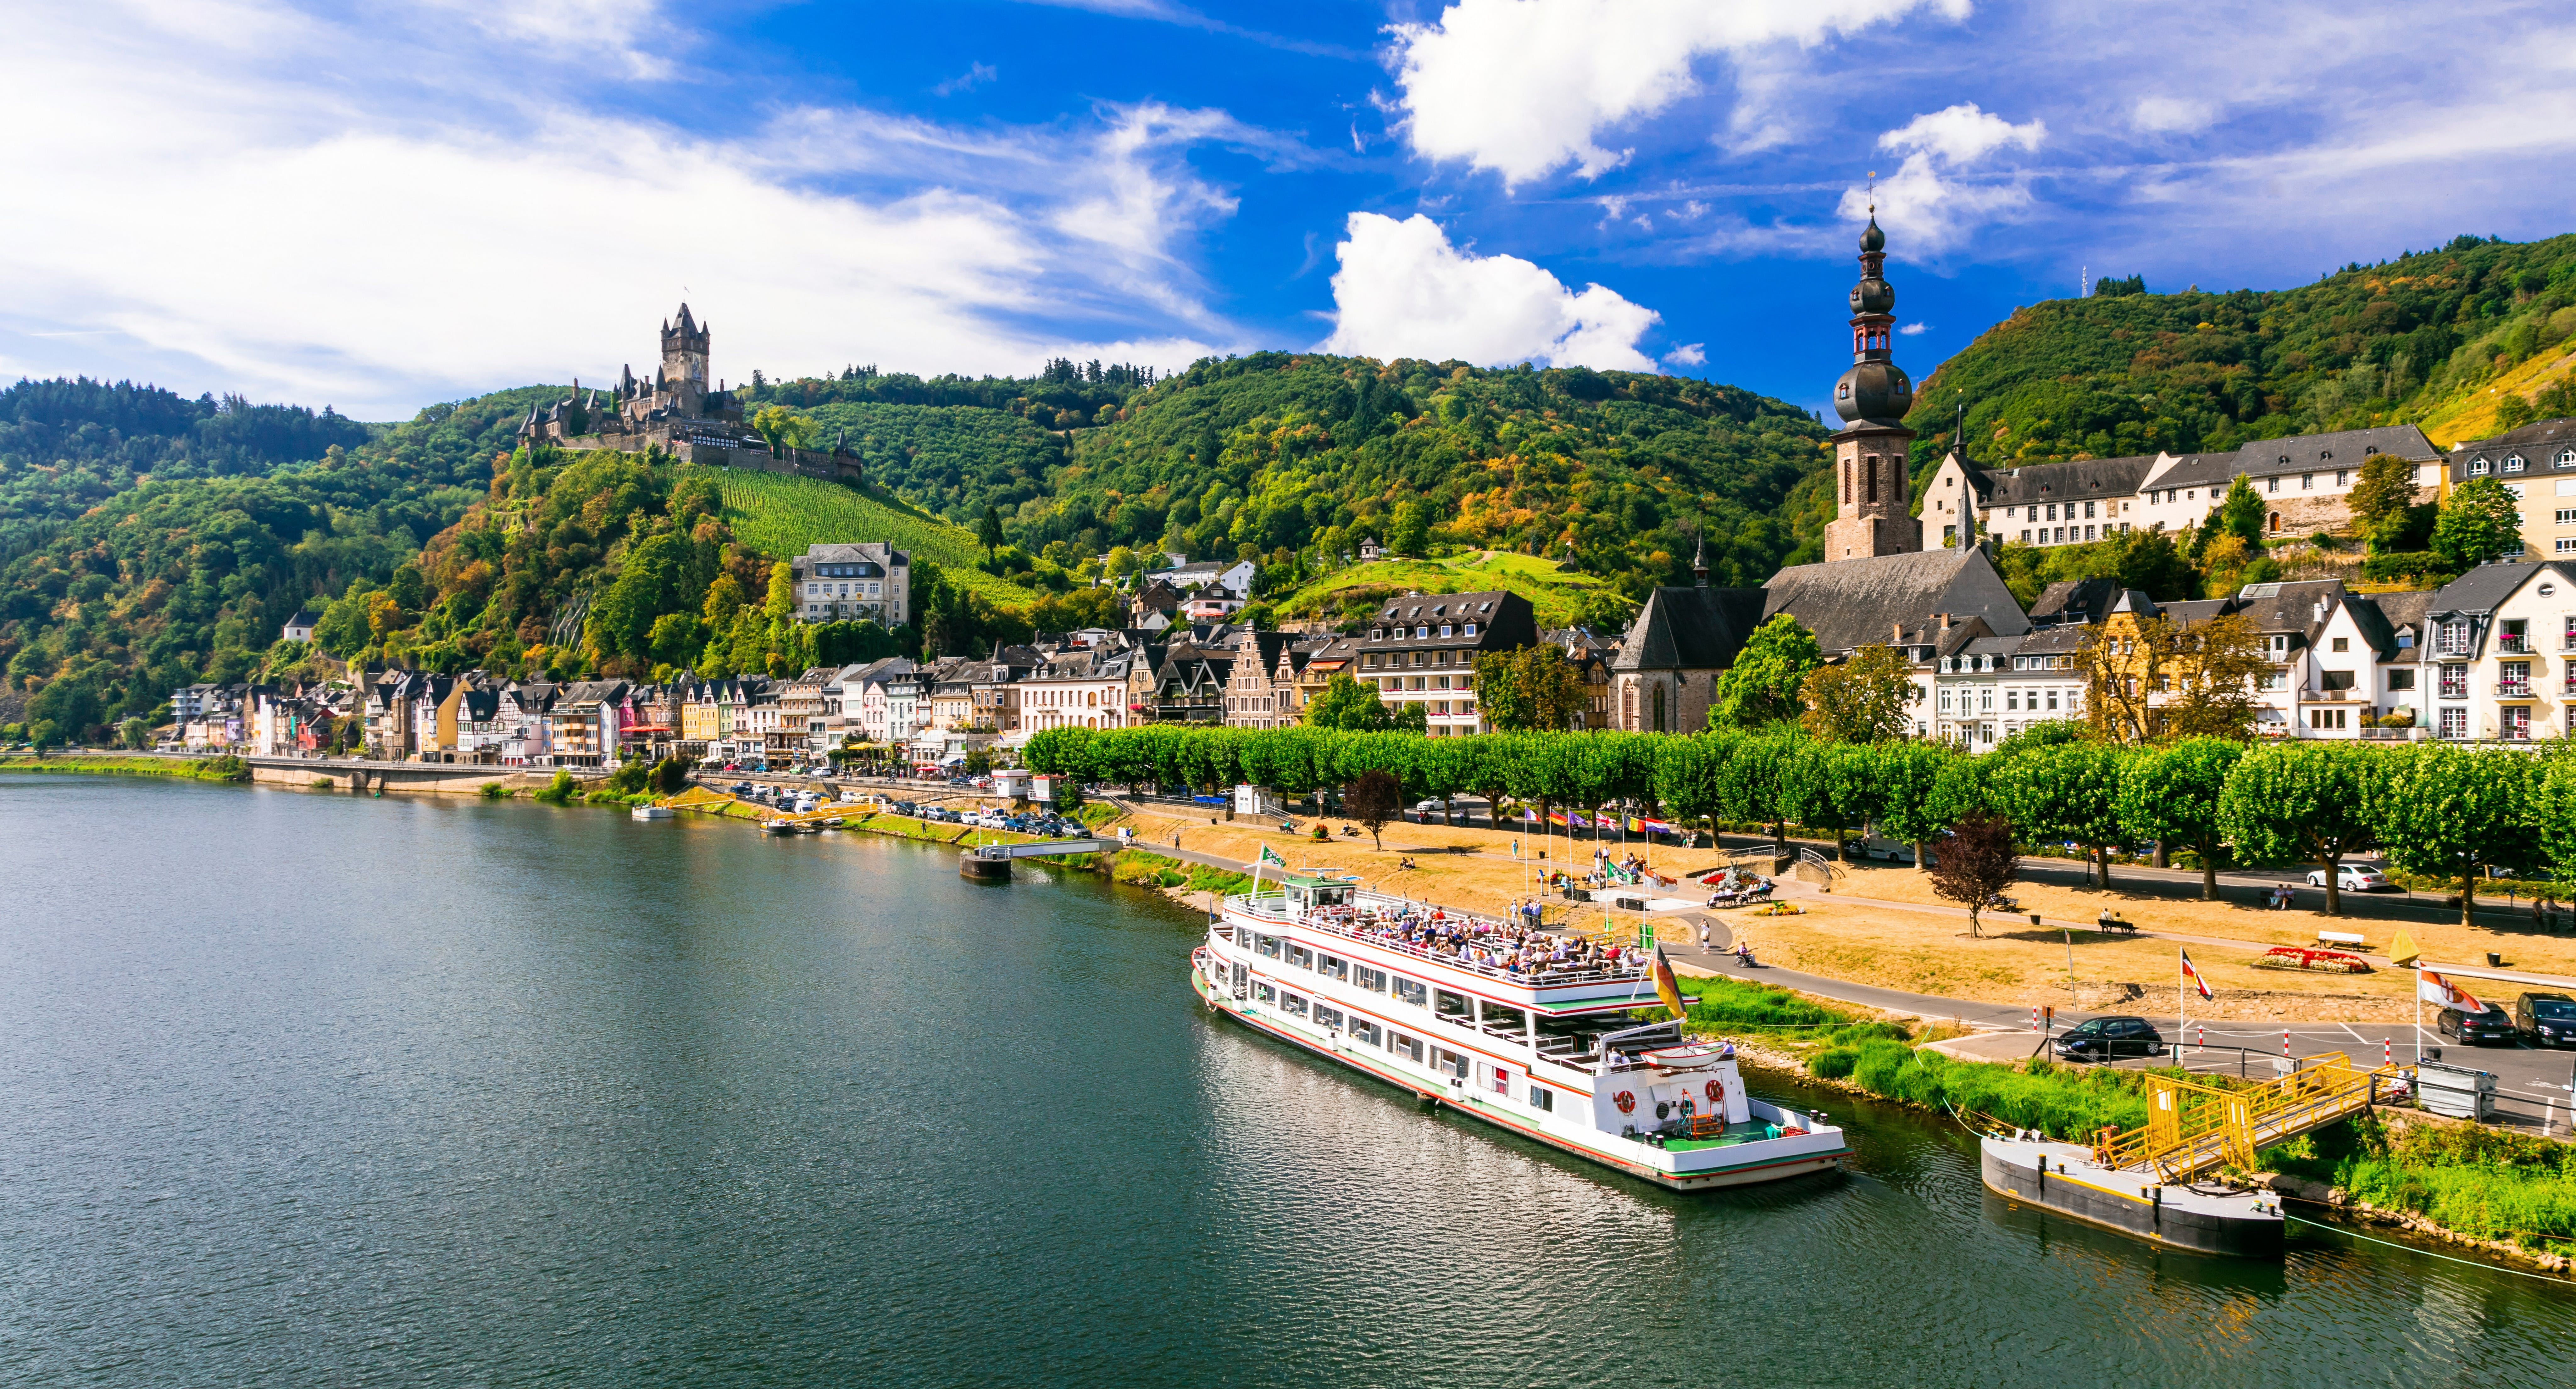 Enjoy a relaxing river cruise through New England and Canada in autumn.